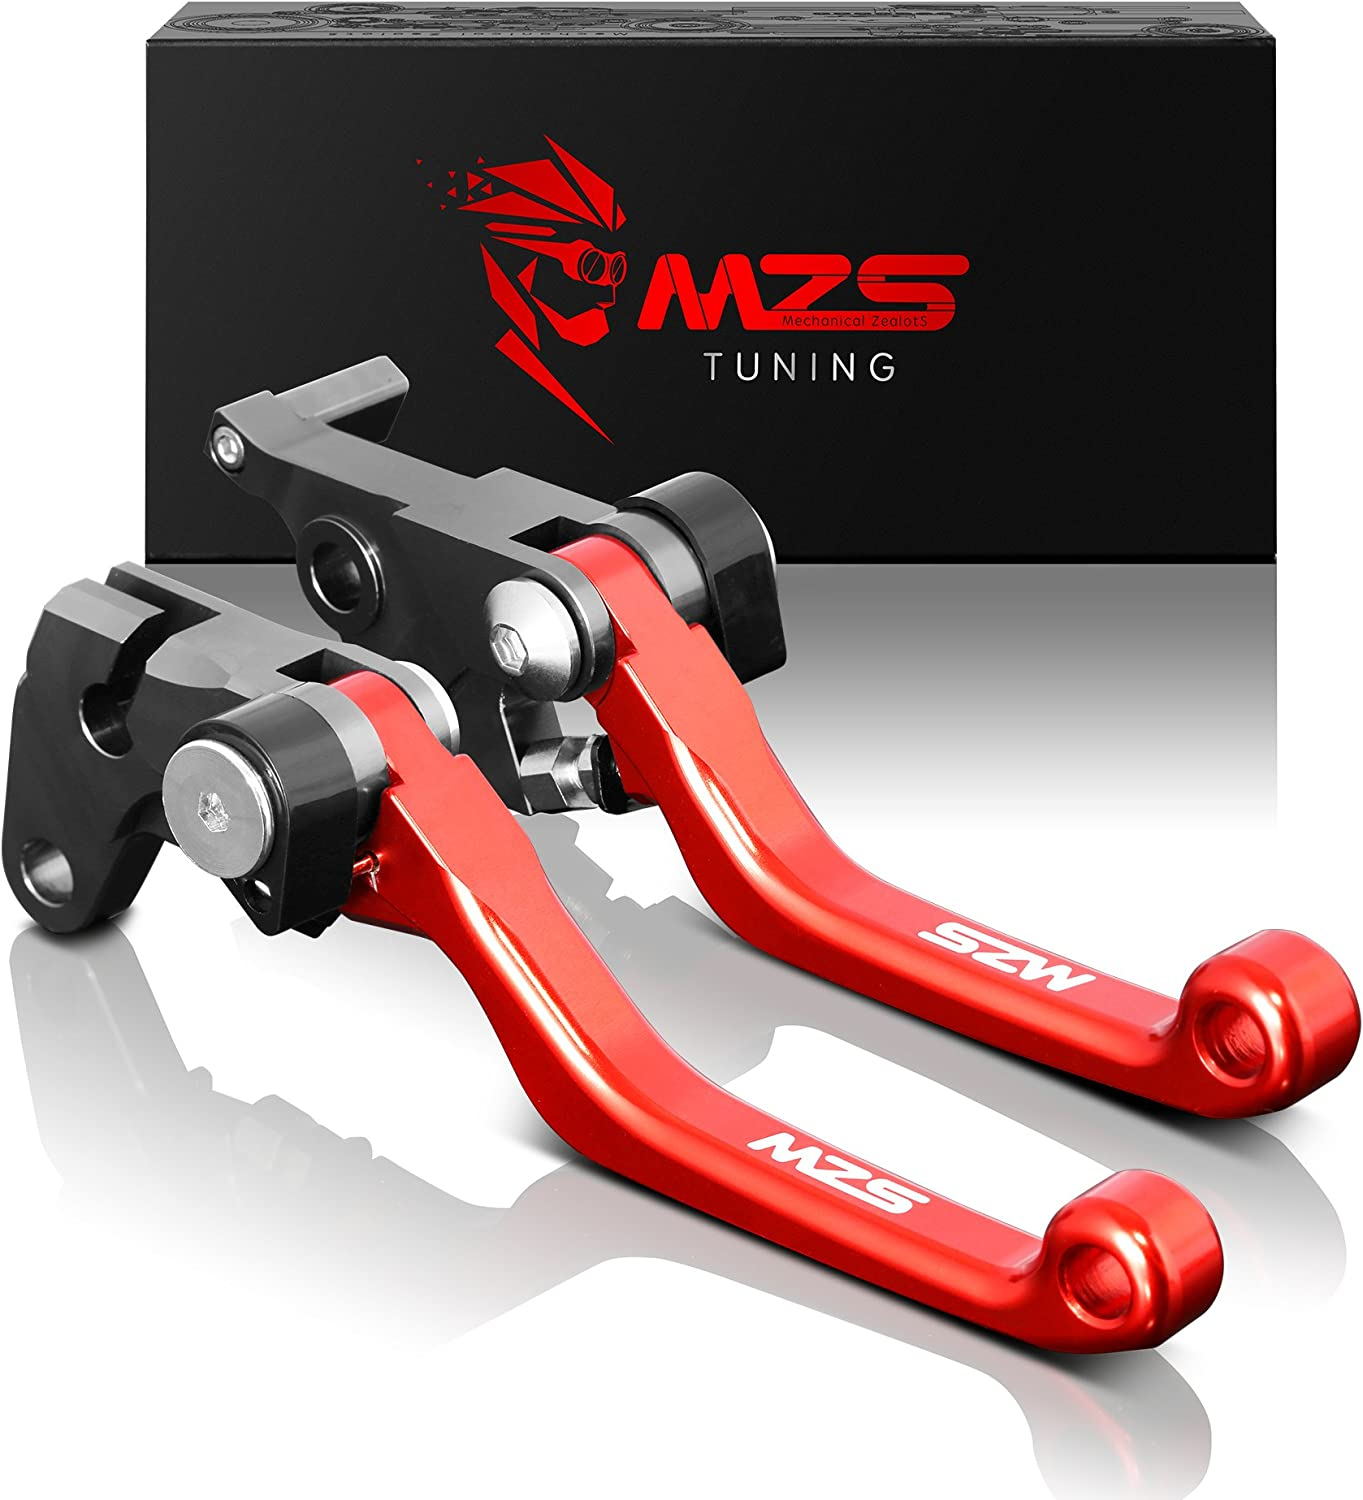 MZS Pivot Levers Brake Clutch CNC Red for Beta 250RR 300RR 350RR 350RS 390RR 400RR 400RS 430RR 430RS 450RR 450RS 480RR 498RR 300 x-trainer